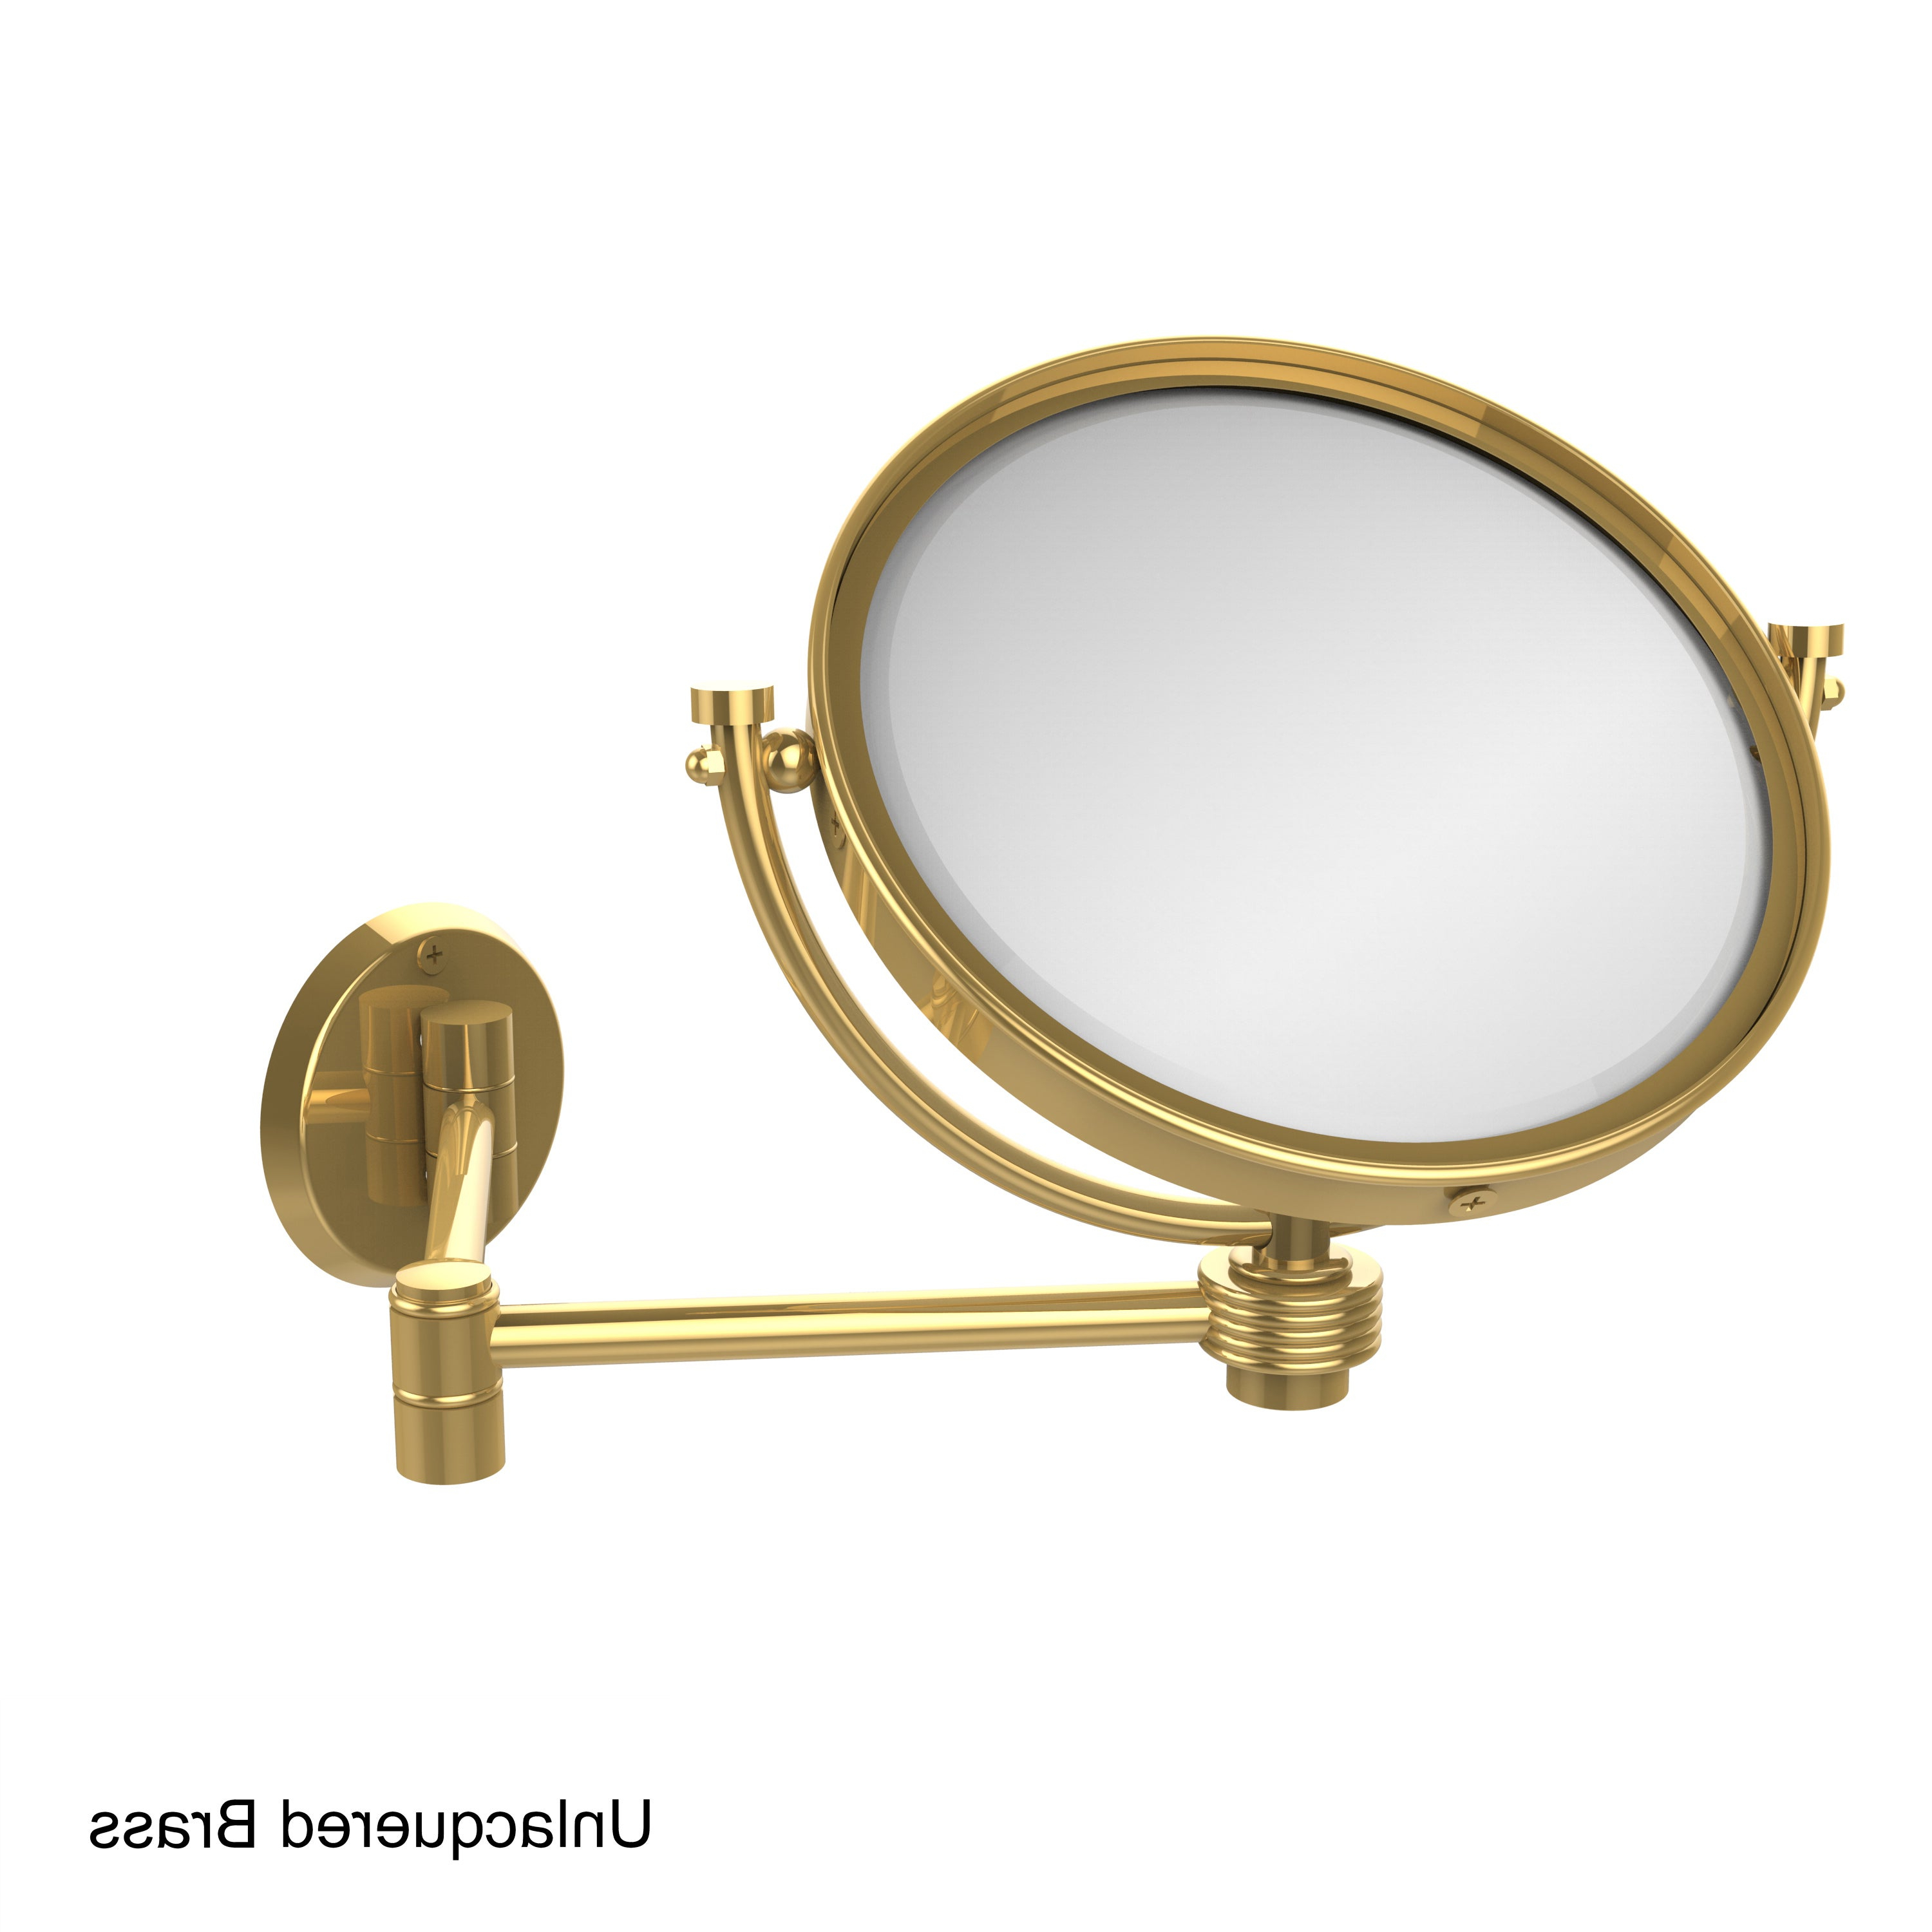 Extending Wall Mirrors Regarding Most Recent Allied Brass 8 Inch Wall Mounted Extending 2x Magnification Makeup Mirror With Groovy Accent (View 14 of 20)